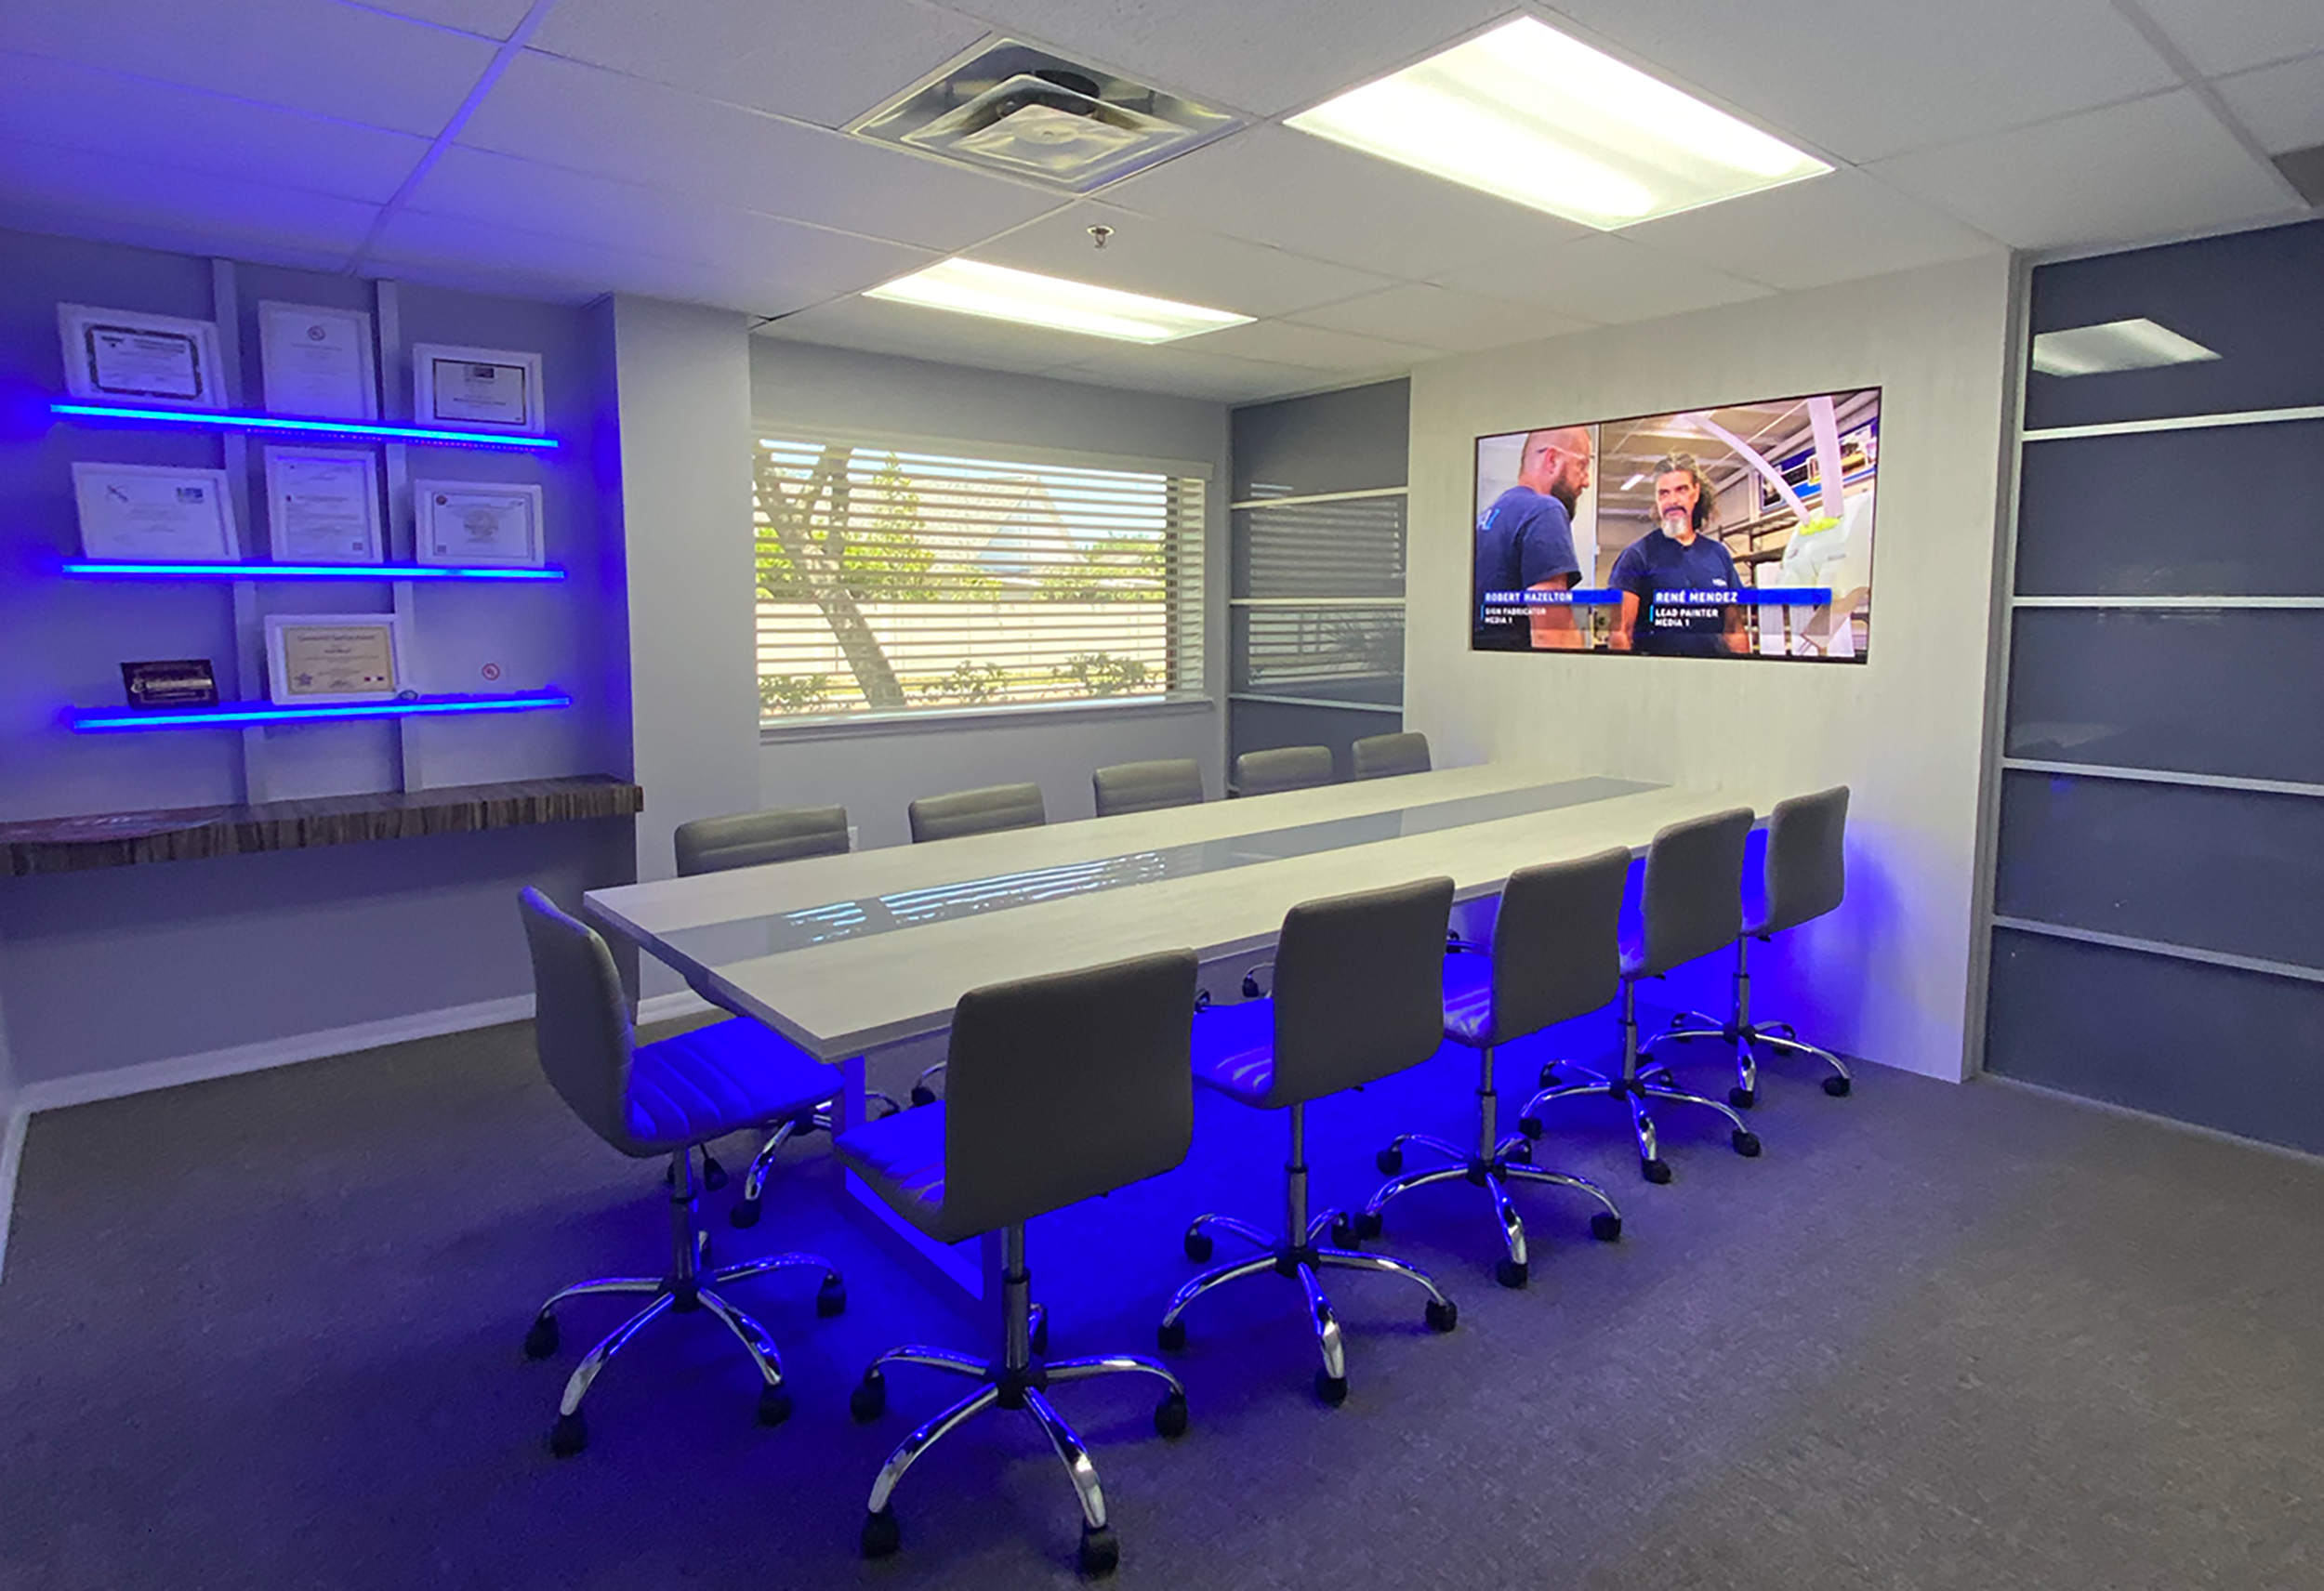 Media 1/Wrap This' new conference room features a 4 x 11-ft. table mounted into an aluminum wall feature that includes a 65-in. flat screen TV. Blue LED modules are located below the table and in the shelving of the side walls.